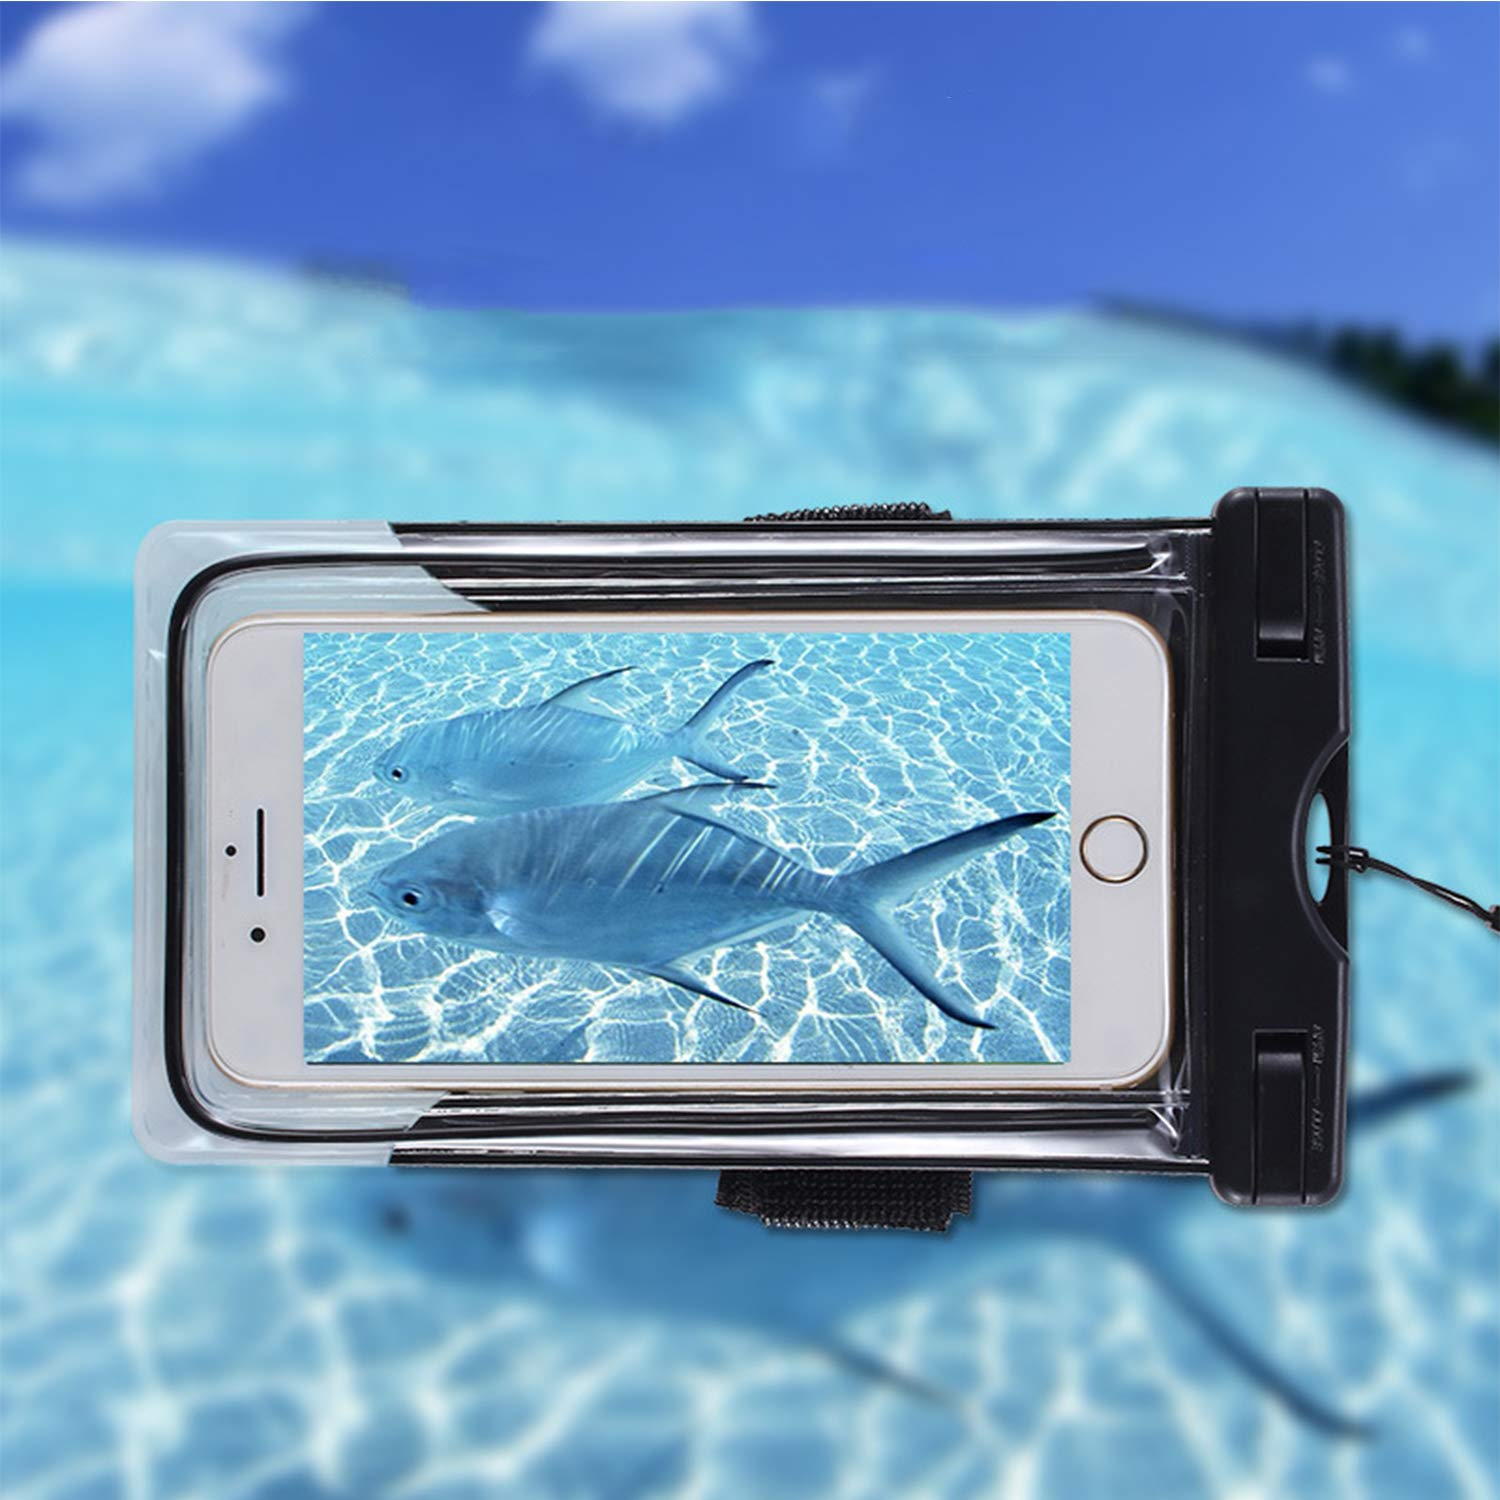 """Universal Waterproof Case for Smartphone Device to 6"""" Fit iPhone X/8/8plus 7plus/6plus Samsung Galaxy s8/s8plus/s7 Google Pixel HTC10,for Water Parks/Beach/Cruise/Pools"""